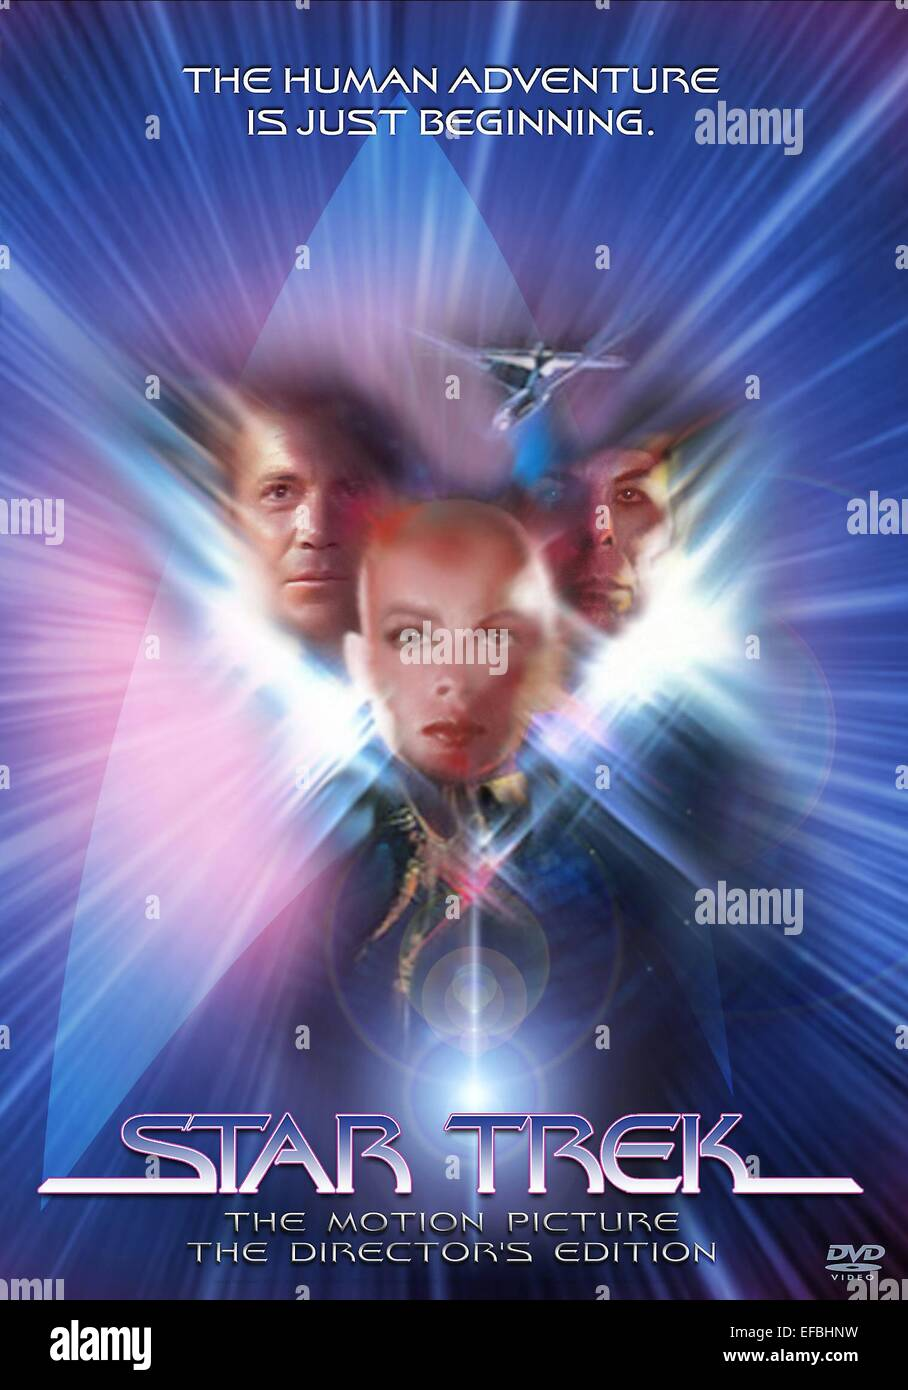 MOVIE POSTER STAR TREK THE MOTION PICTURE 1979